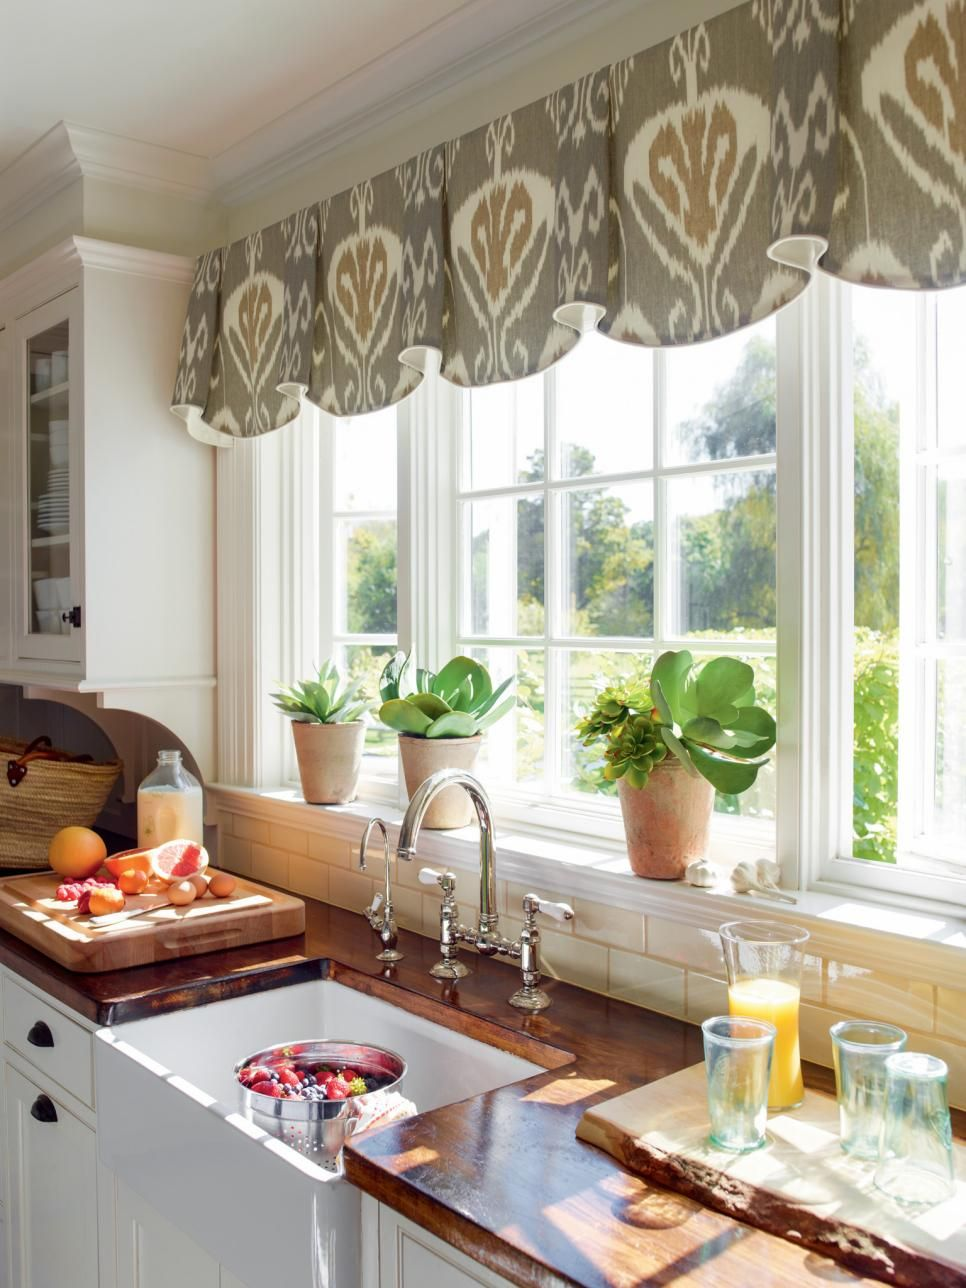 10 stylish kitchen window treatment ideas ikat pattern pattern 10 stylish kitchen window treatment ideas